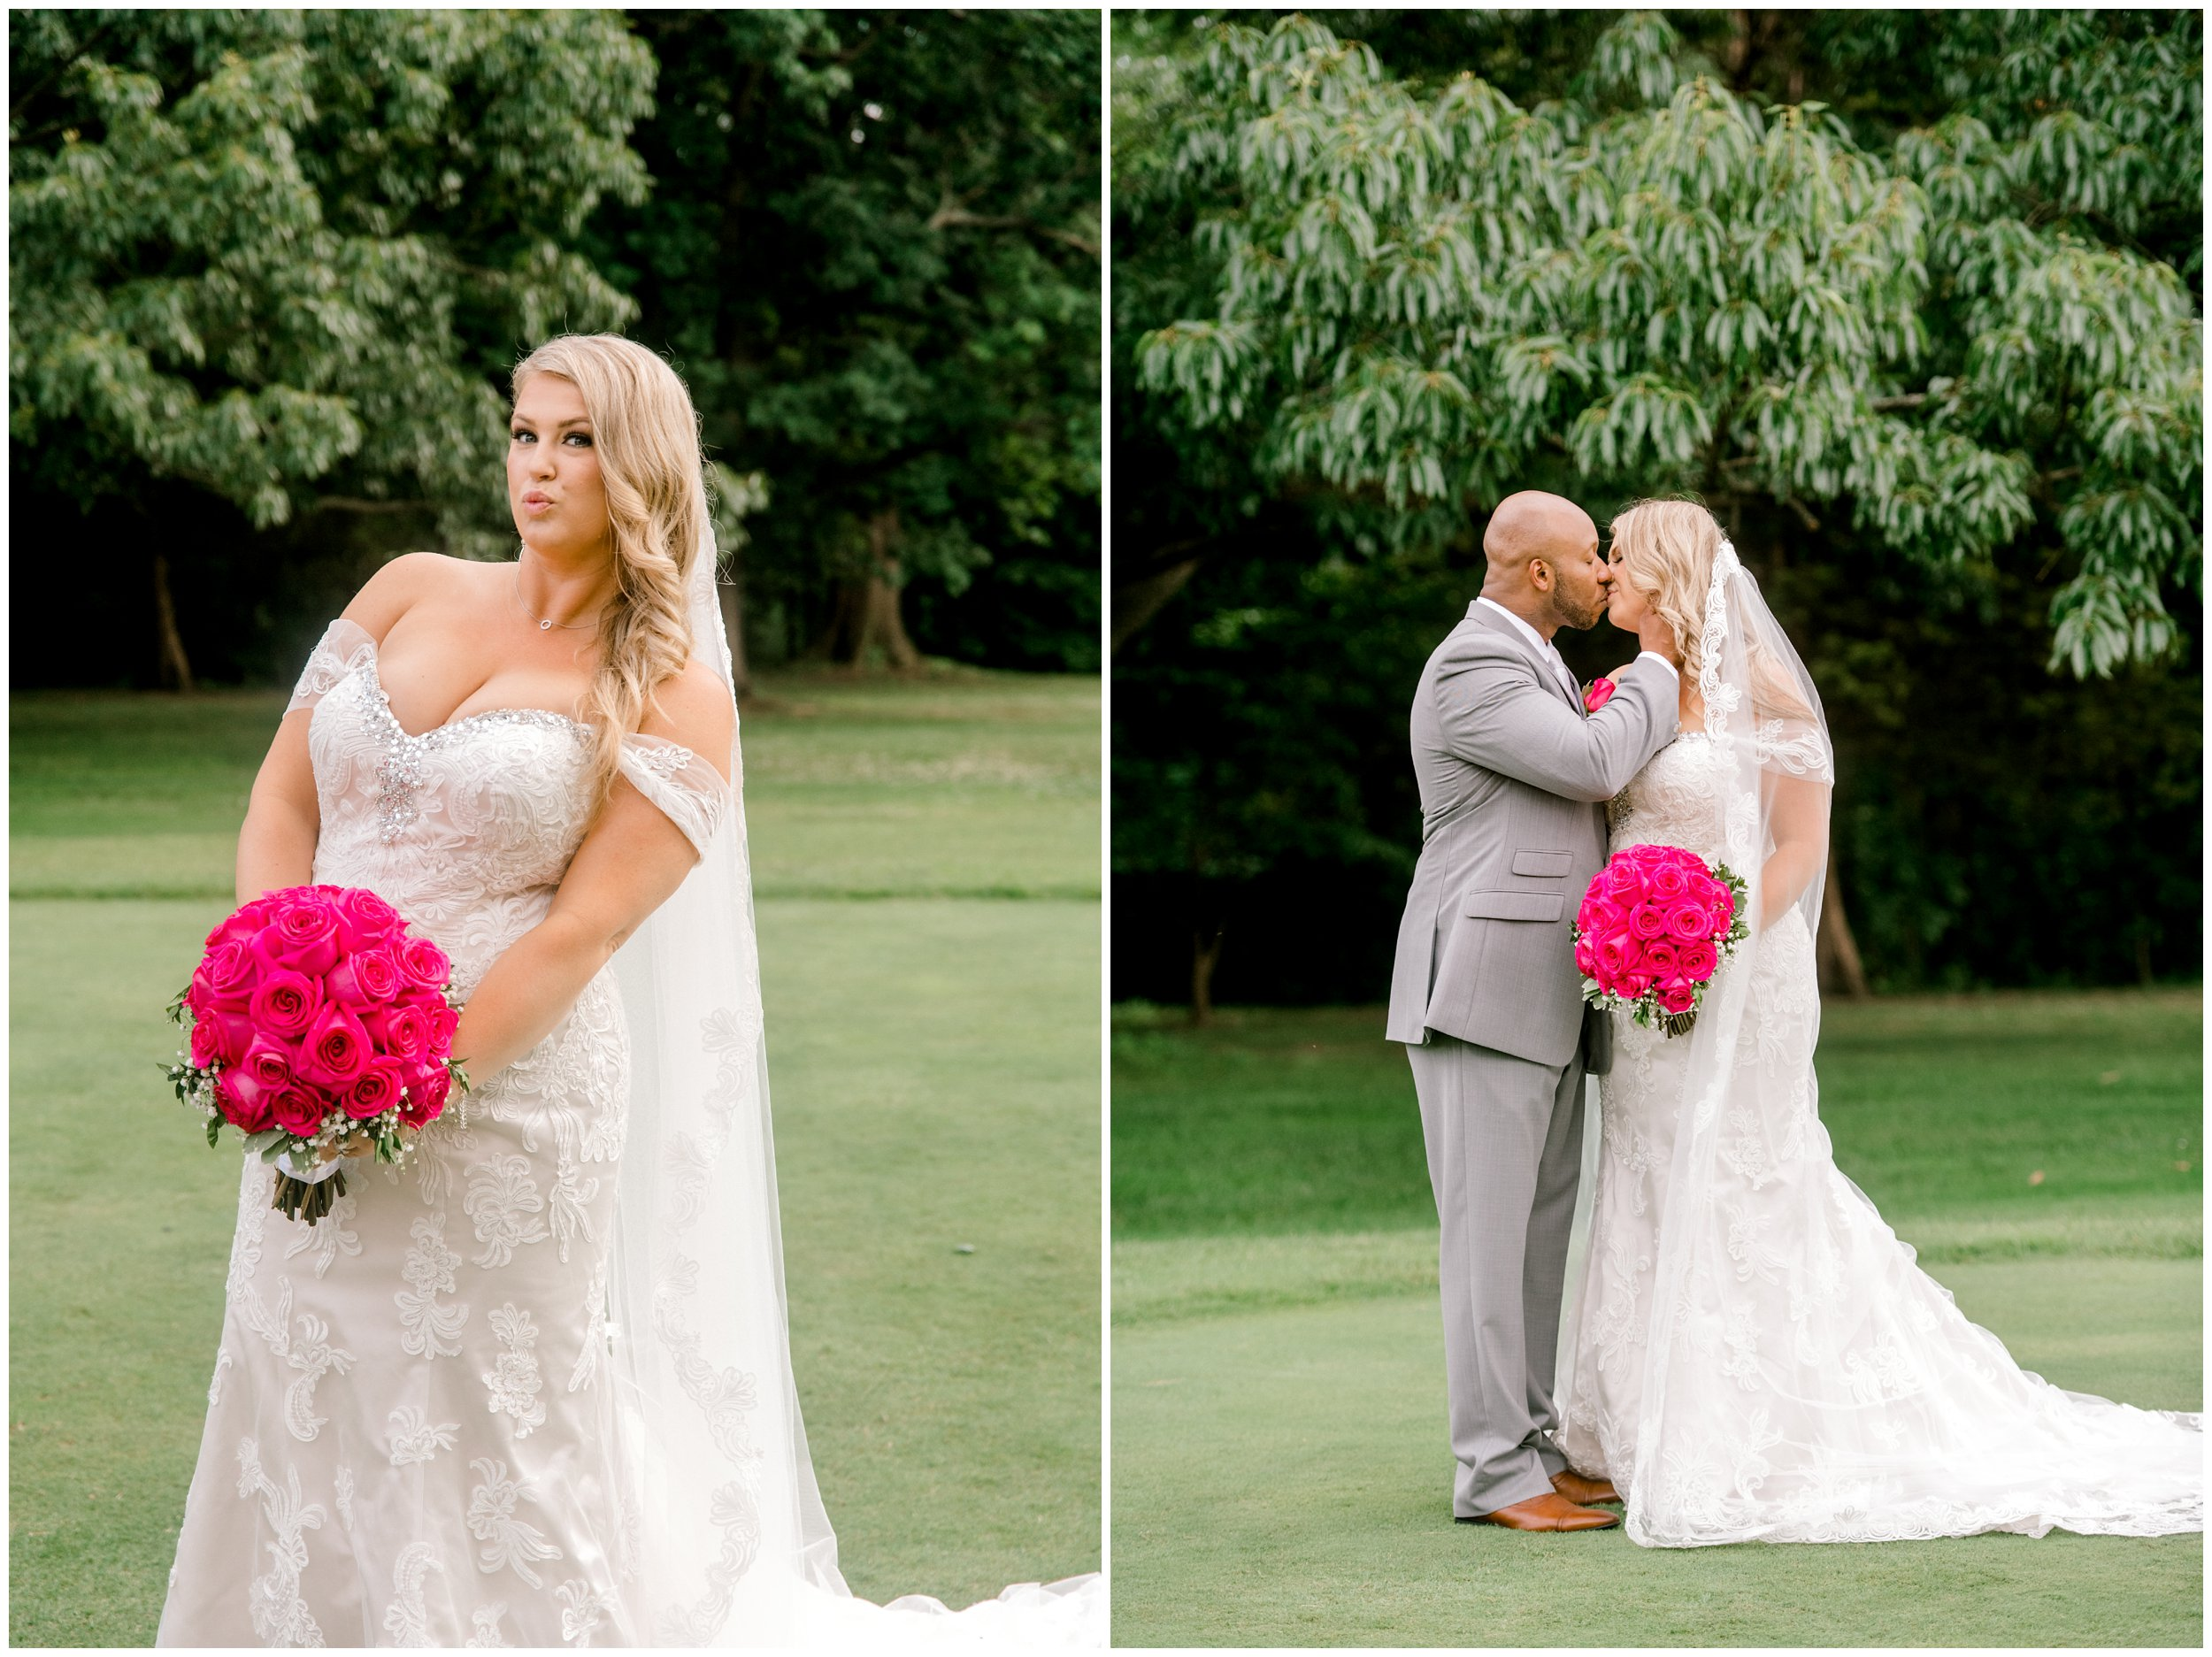 Bridal portrait, bride and groom kissing